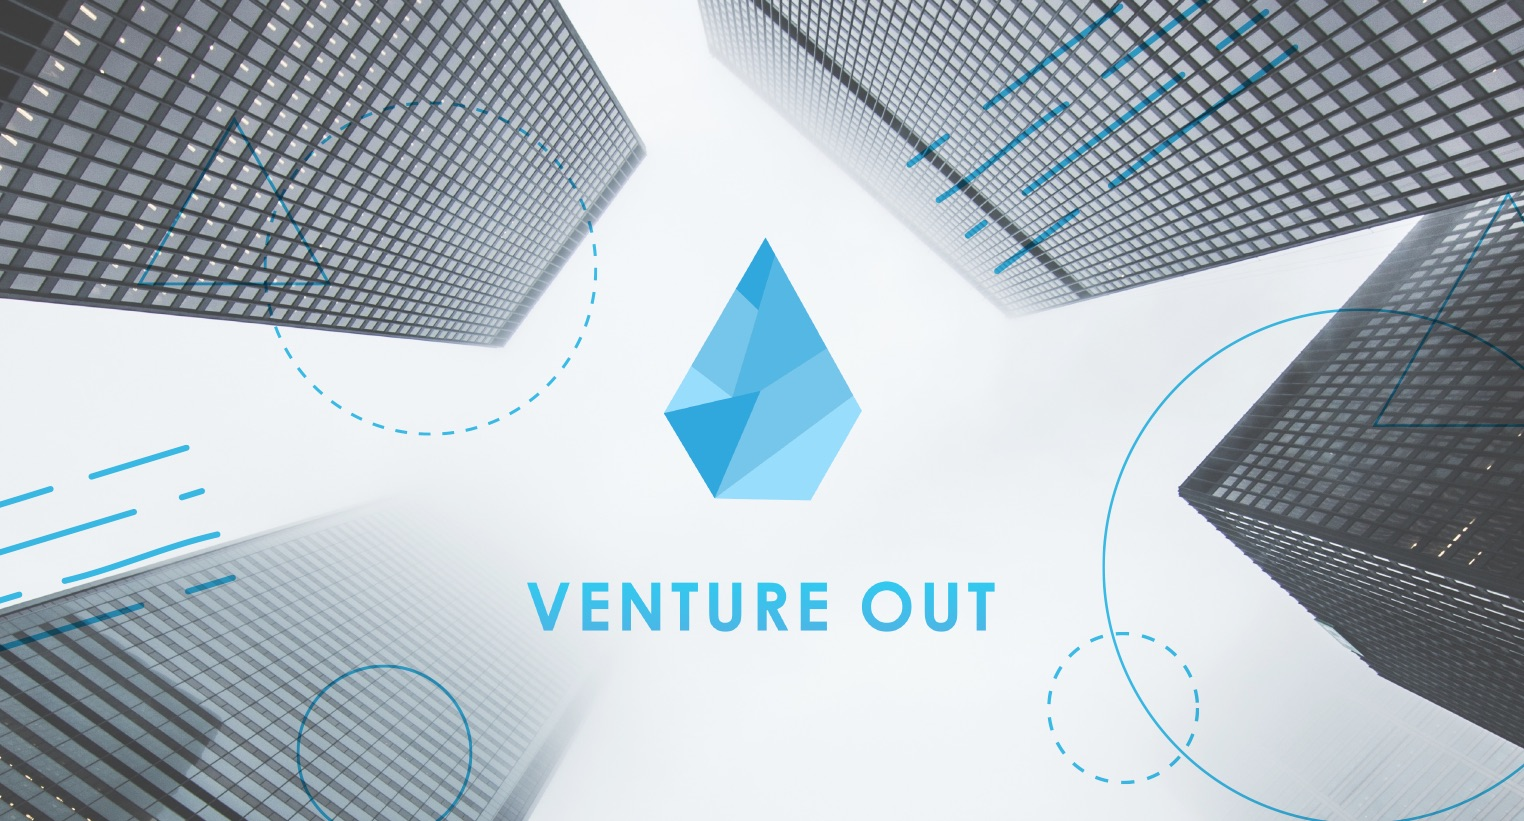 Tall buildings with the VentureOut logo in the centre